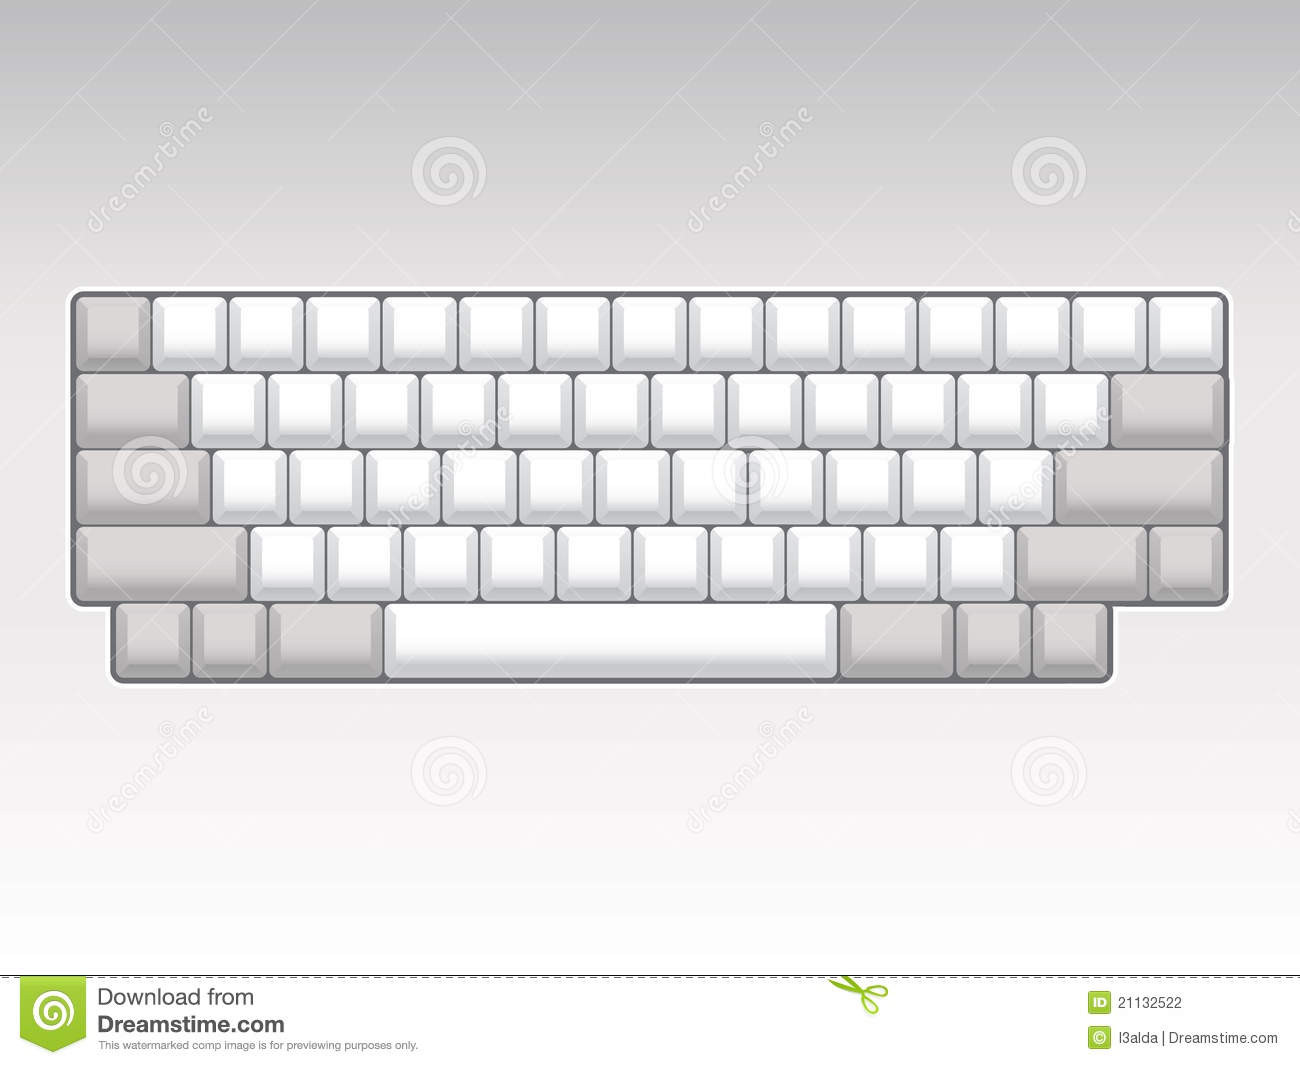 Free Printable Keyboarding Worksheets Blank Keyboard Layout Stock Illustration Illustration Of